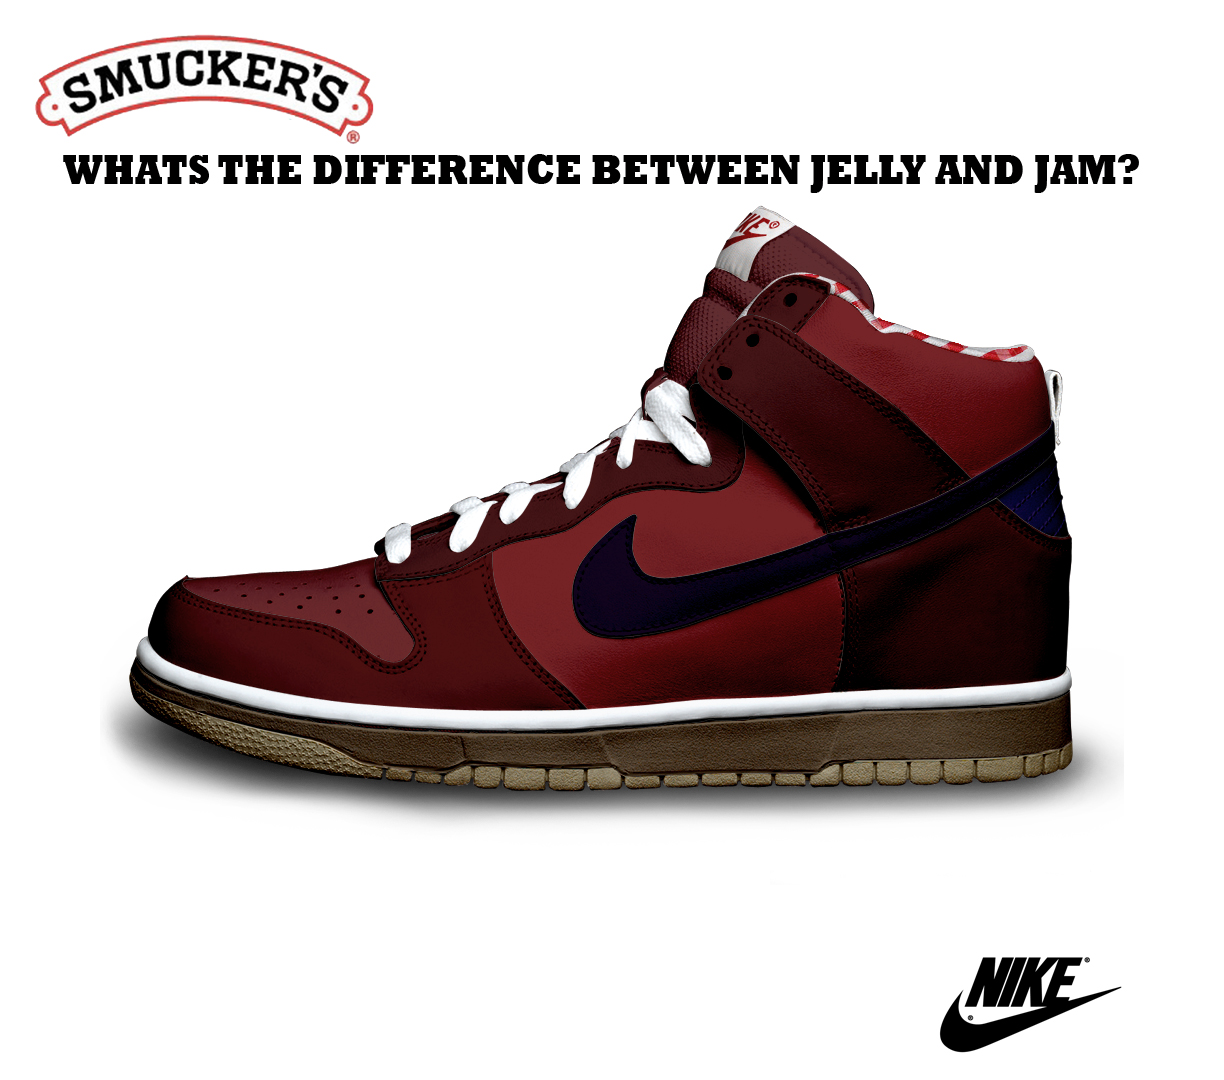 jelly1 Nike x Jif x Smuckers Concepts